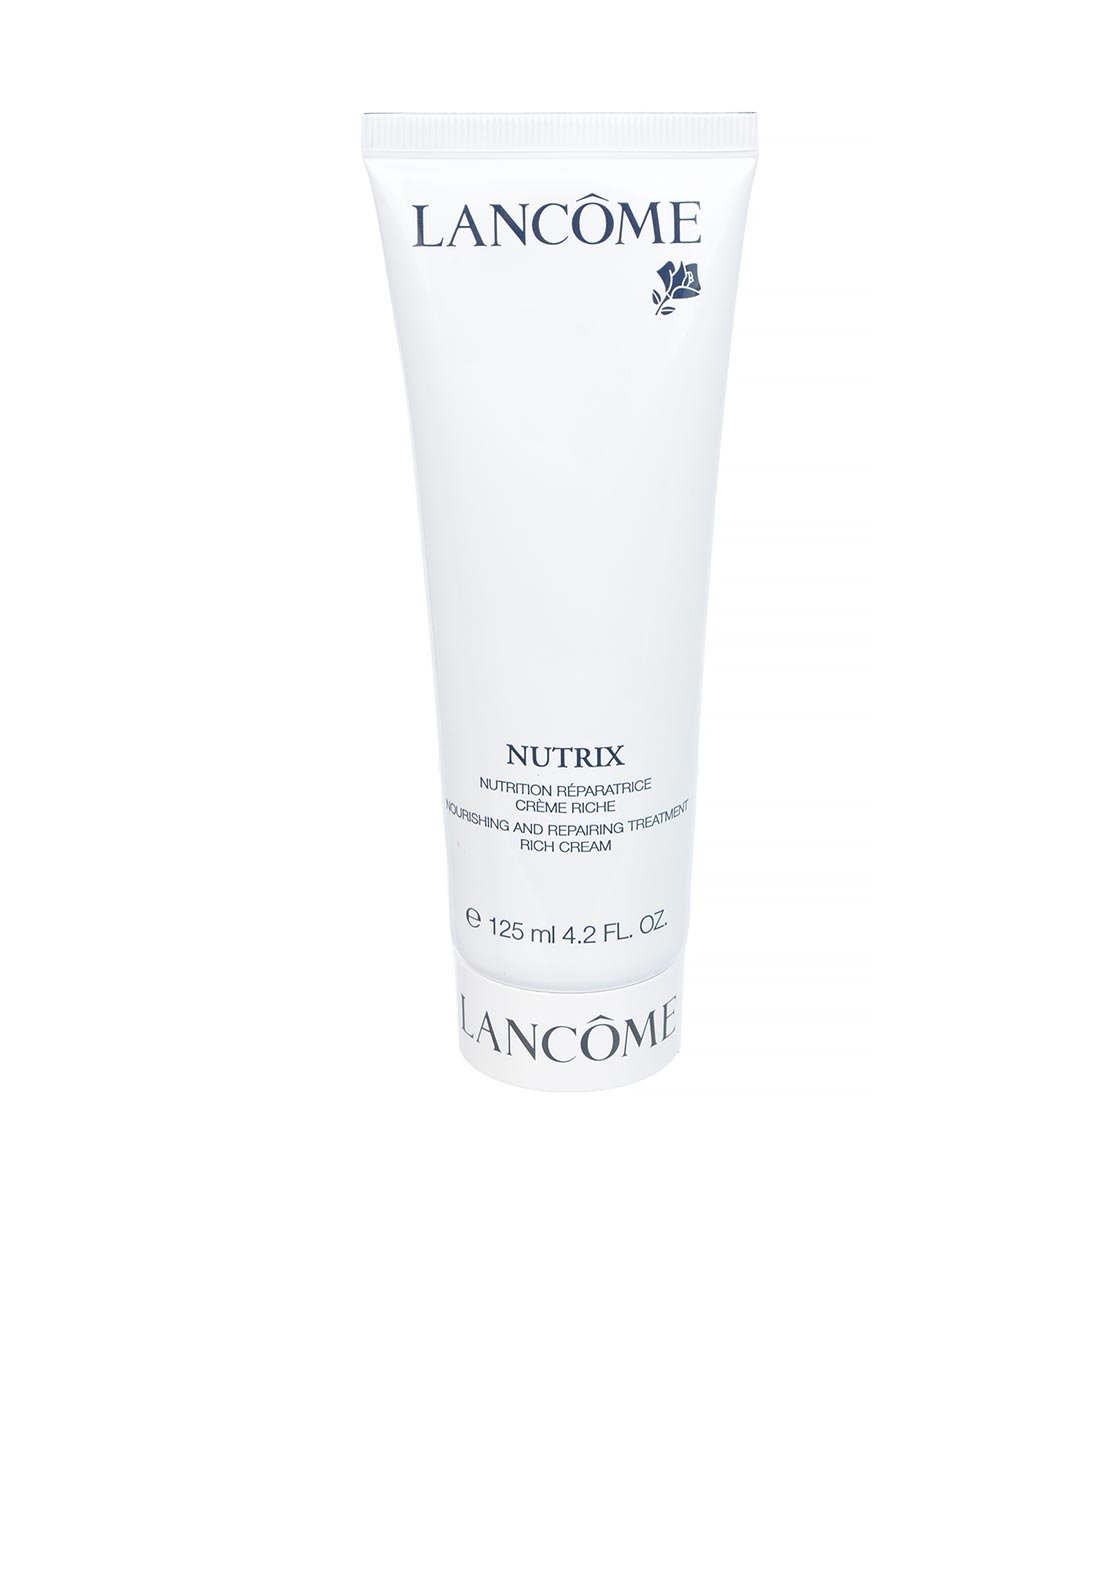 Lancome Nutrix Nourishing and Repairing Treatment Rich Cream, 125ml